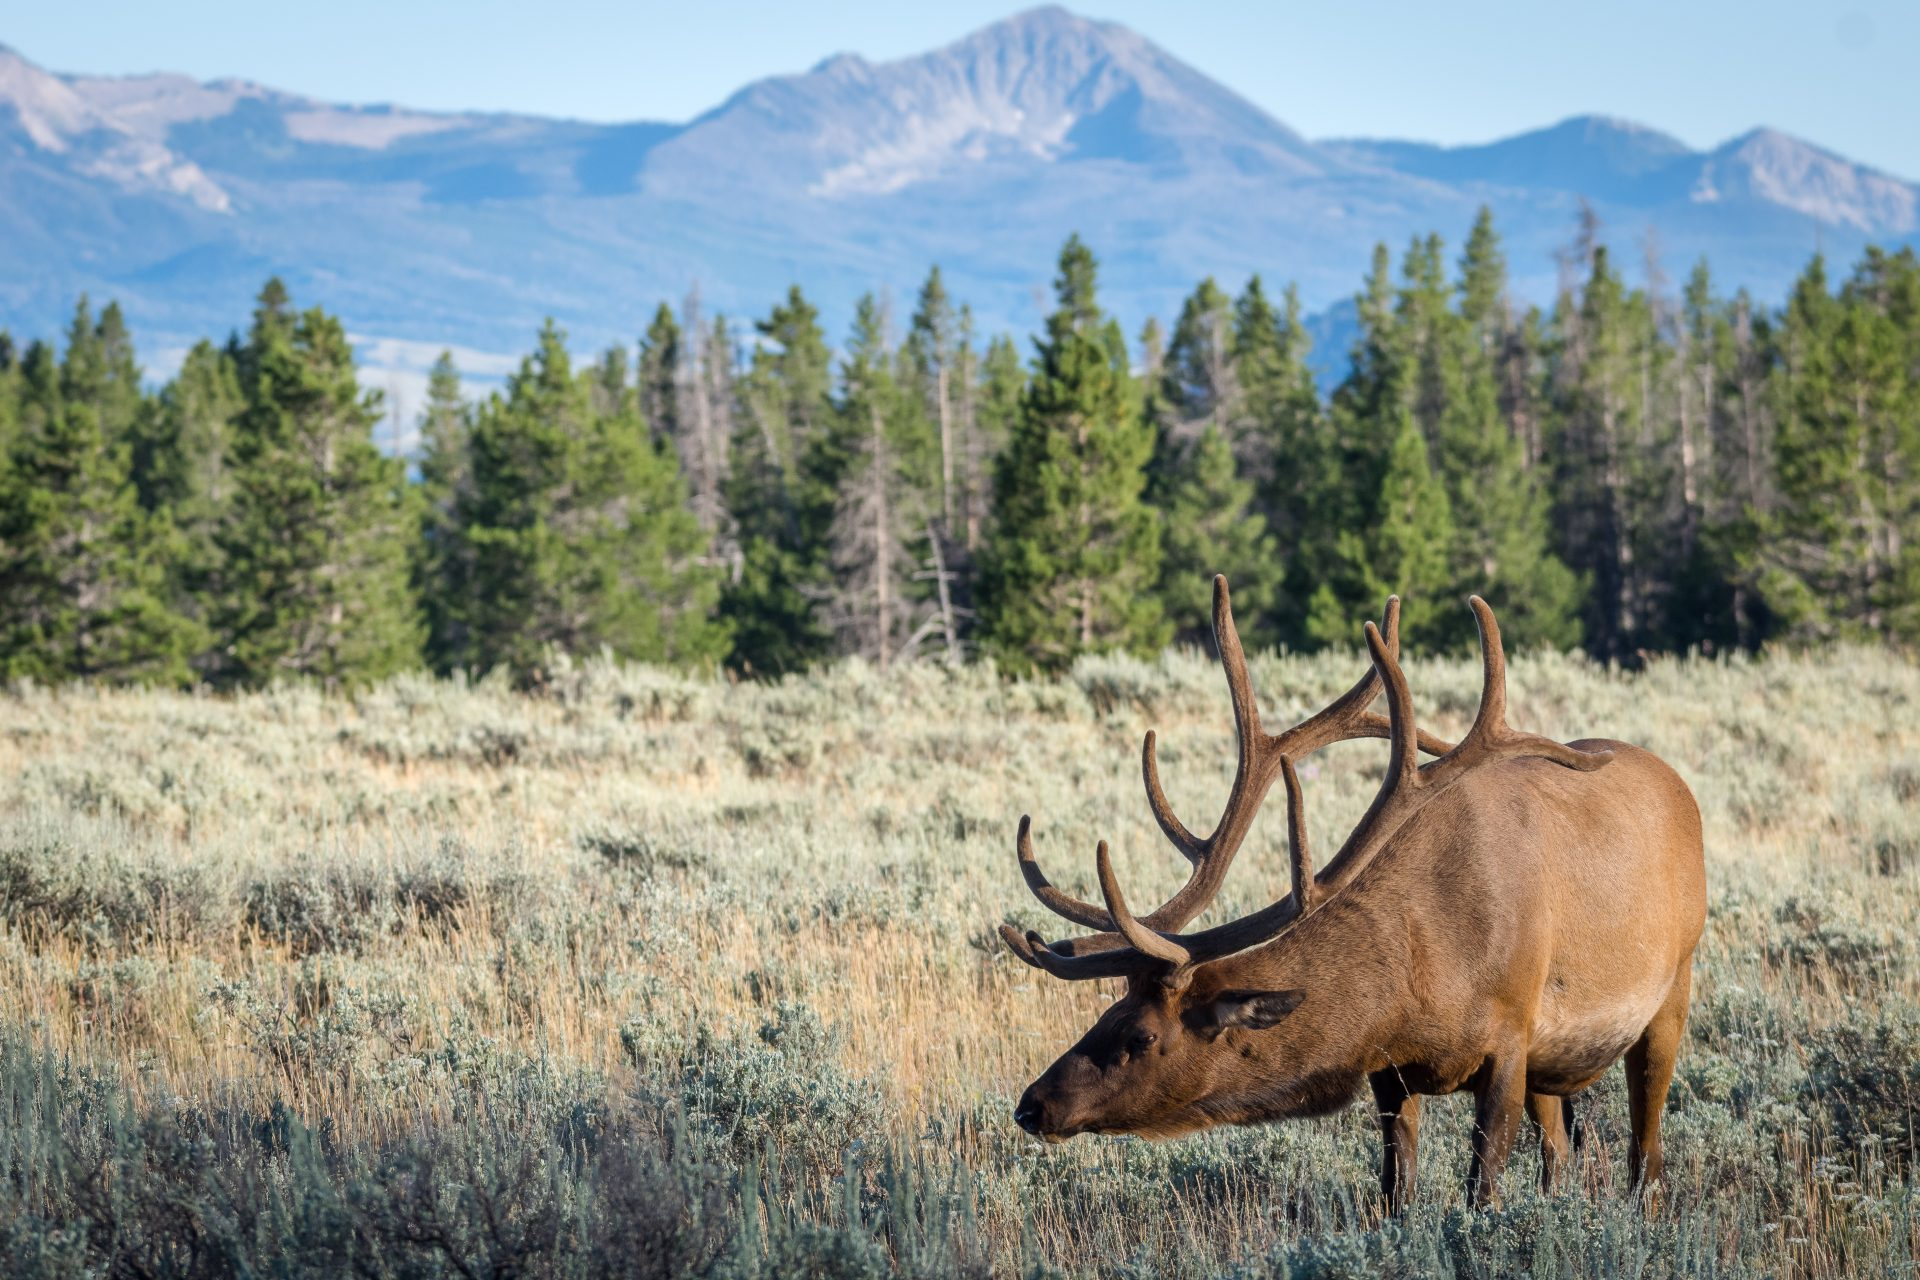 large elk in field with pine trees and mountains in background